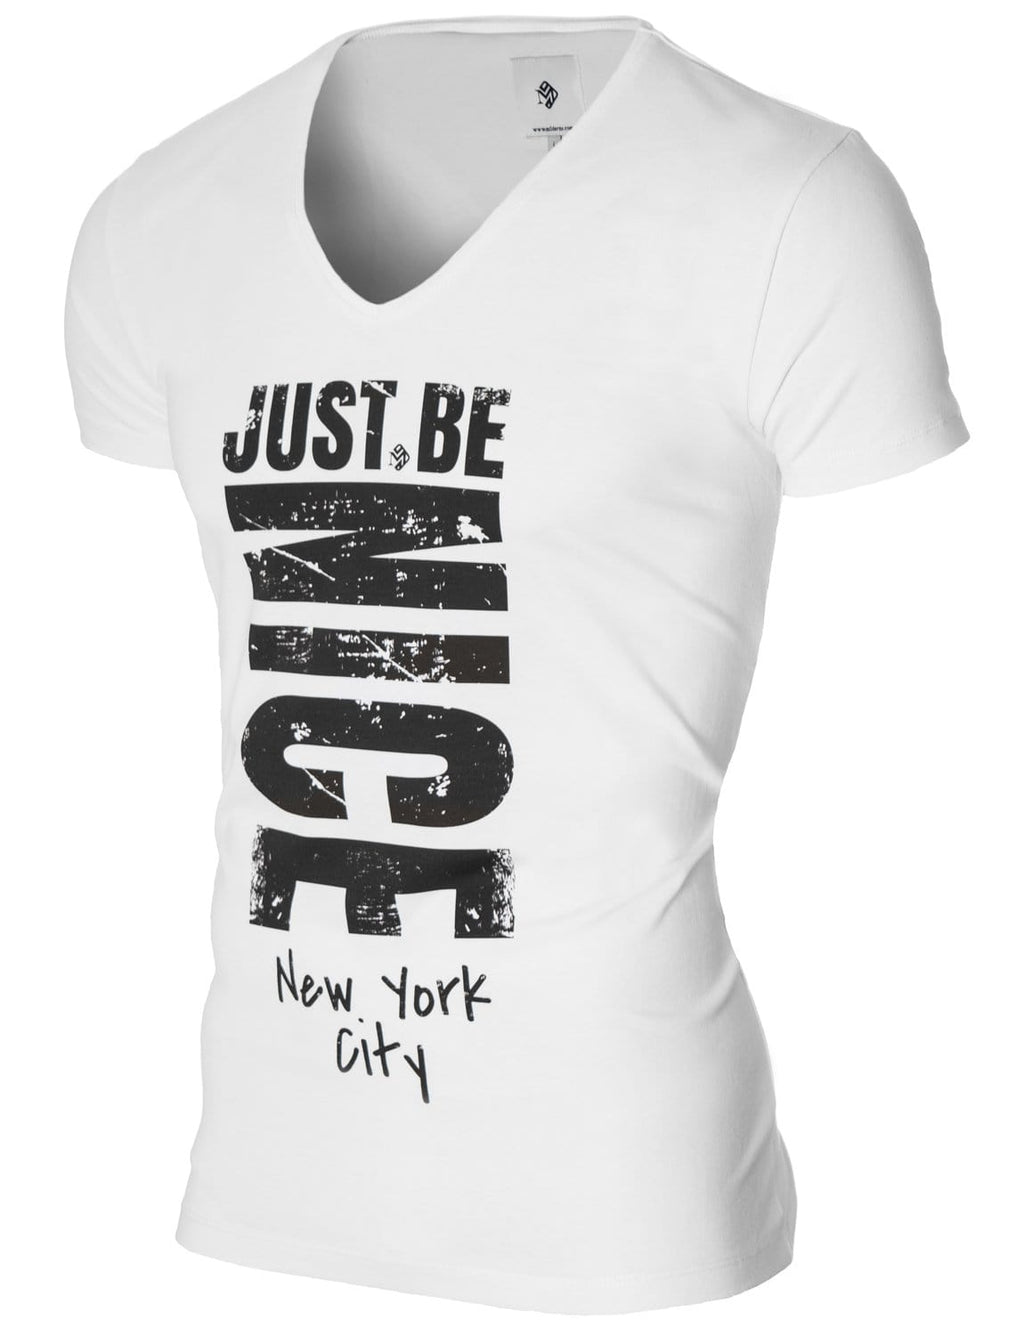 Mens Graphic Tee Slogan Print White (MOD2002VN)